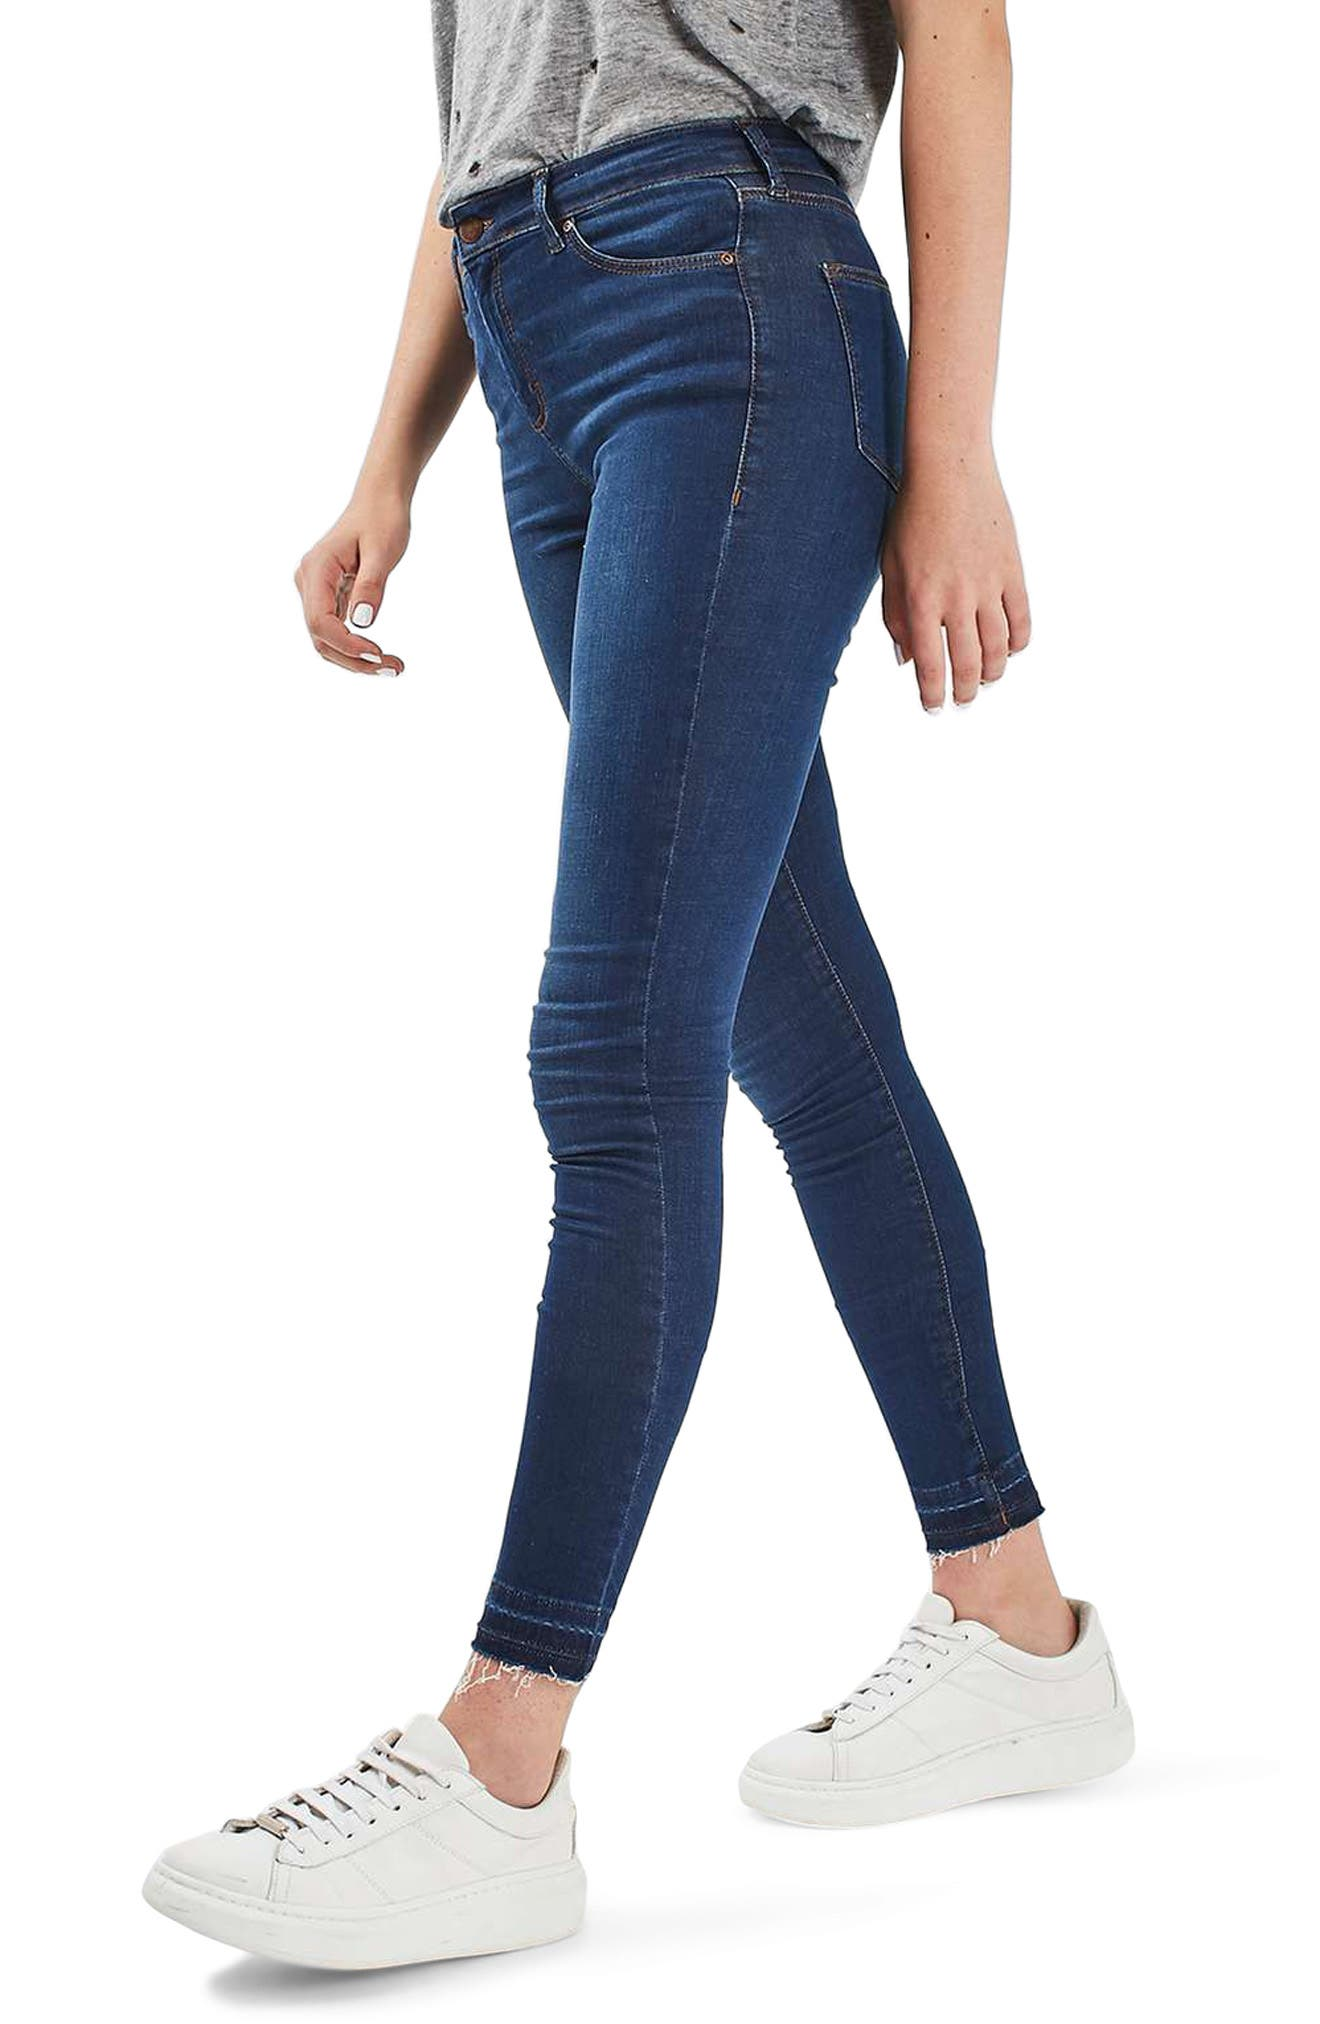 Leigh Release Hem Skinny Jeans,                             Main thumbnail 1, color,                             401